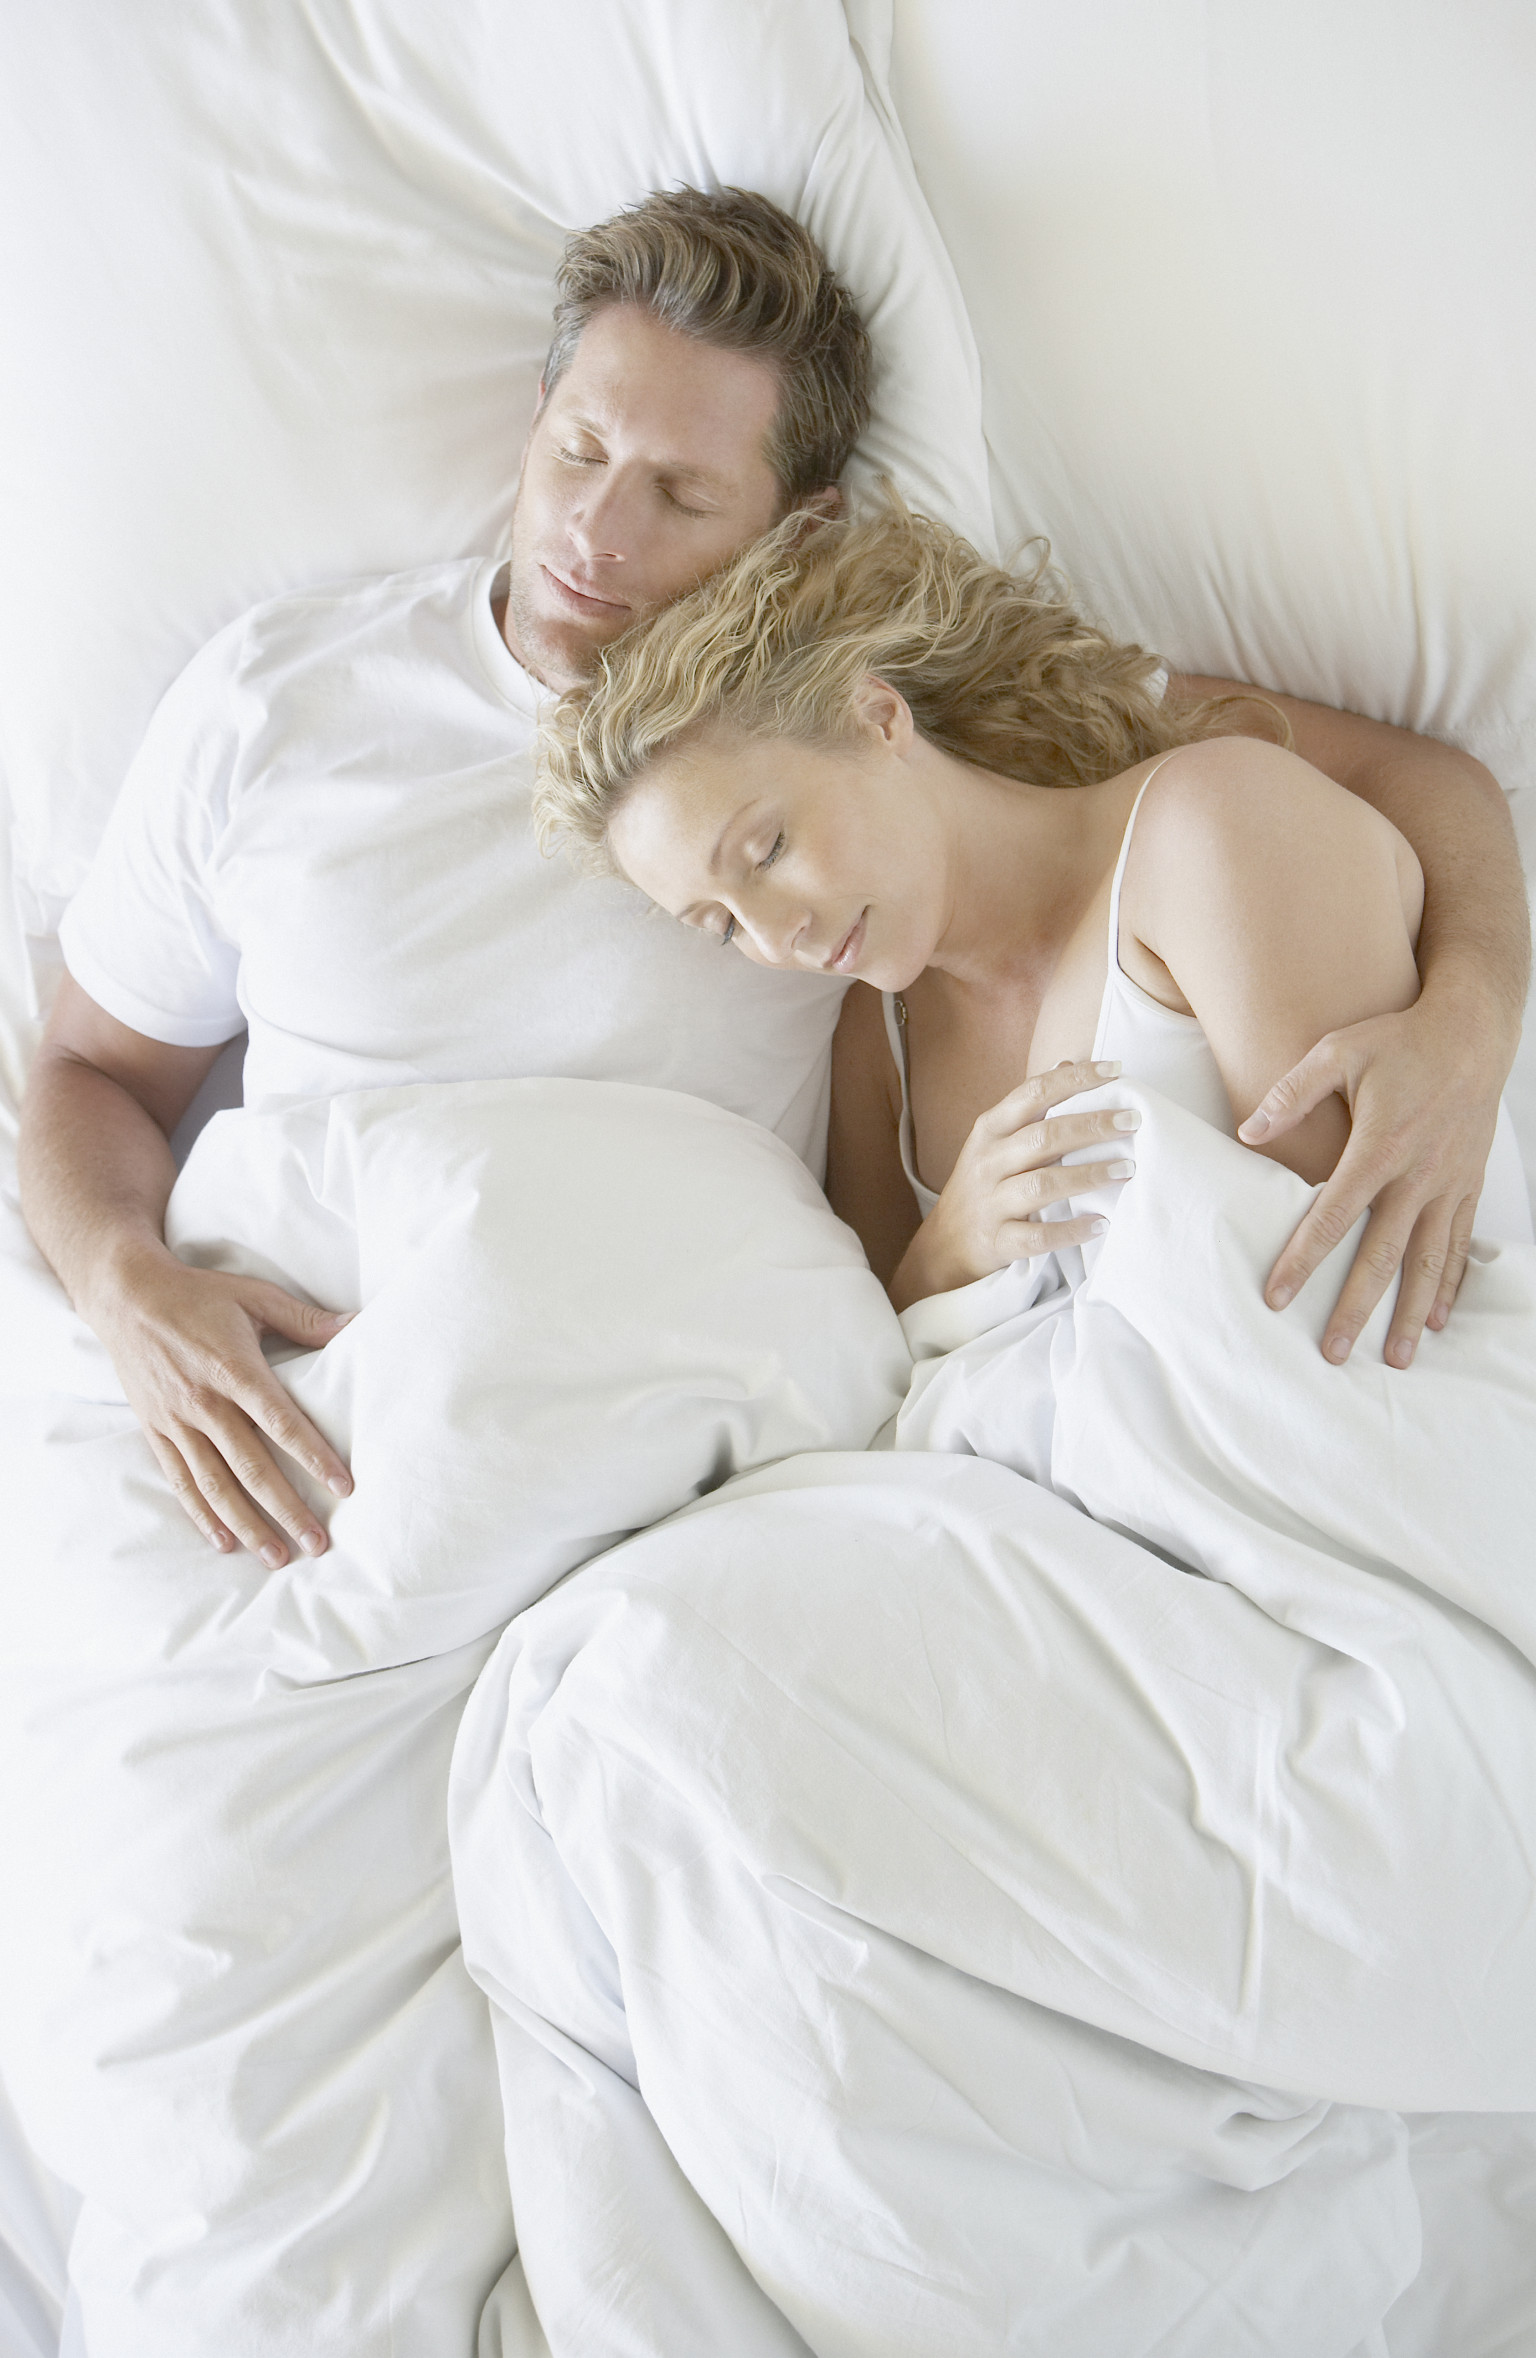 Sexless Marriage How To Deal With A Decrease In Sex